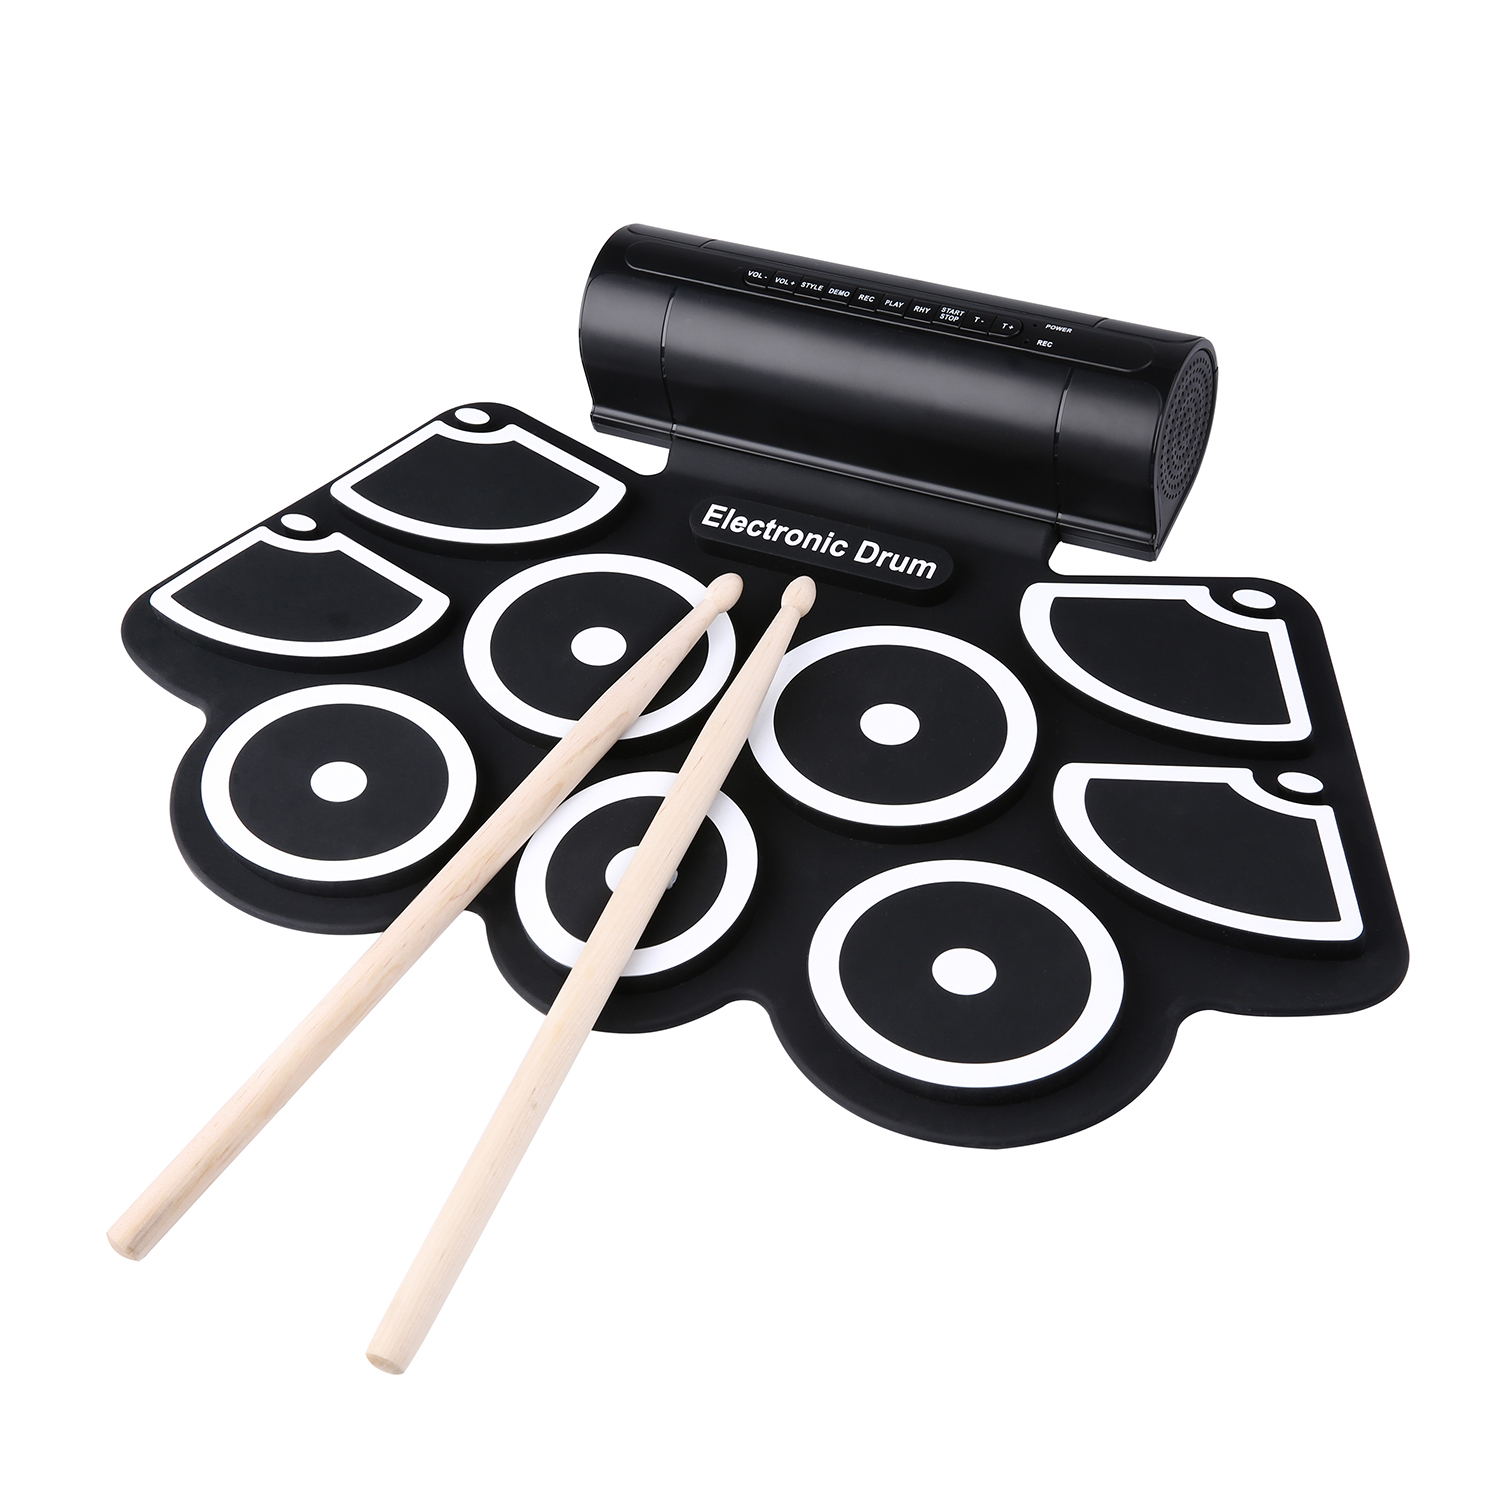 Portable Roll up lectronic Drum Pad Kit Digital USB Roll-up with Drumstick Foot Pedal Drumsticks USB Cable For Practice 14 inch snare drum kit 14 x 5 5 with drumsticks tuning key strap practice pad and bag